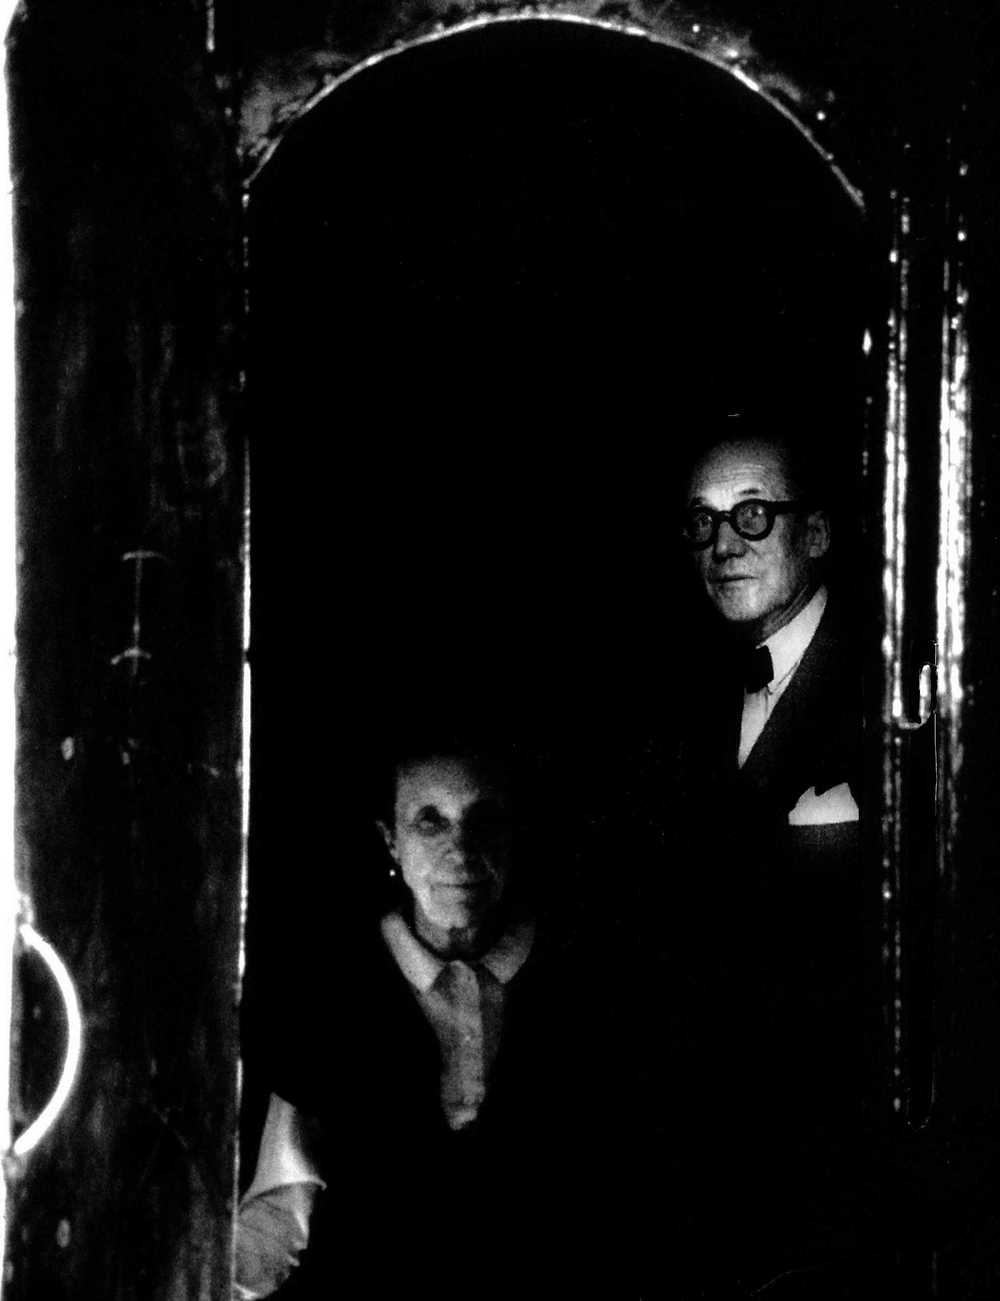 Photo-collage: Original image of Louise Bourgeois and Jerry Gorovoy at the entrance of  Articulated Lair  [Source: Crone, Rainer; Schaesberg, Petrus Graf;  Louise Bourgeois: The Secret of the Cells . Munich, London New York: Prestel, 1998.] + Le Corbusier's photograph at his office [Source: Zaknic, Ivan;  The Final Testament of Père Corbu . New Haven, London: Yale University Press, 1997.]